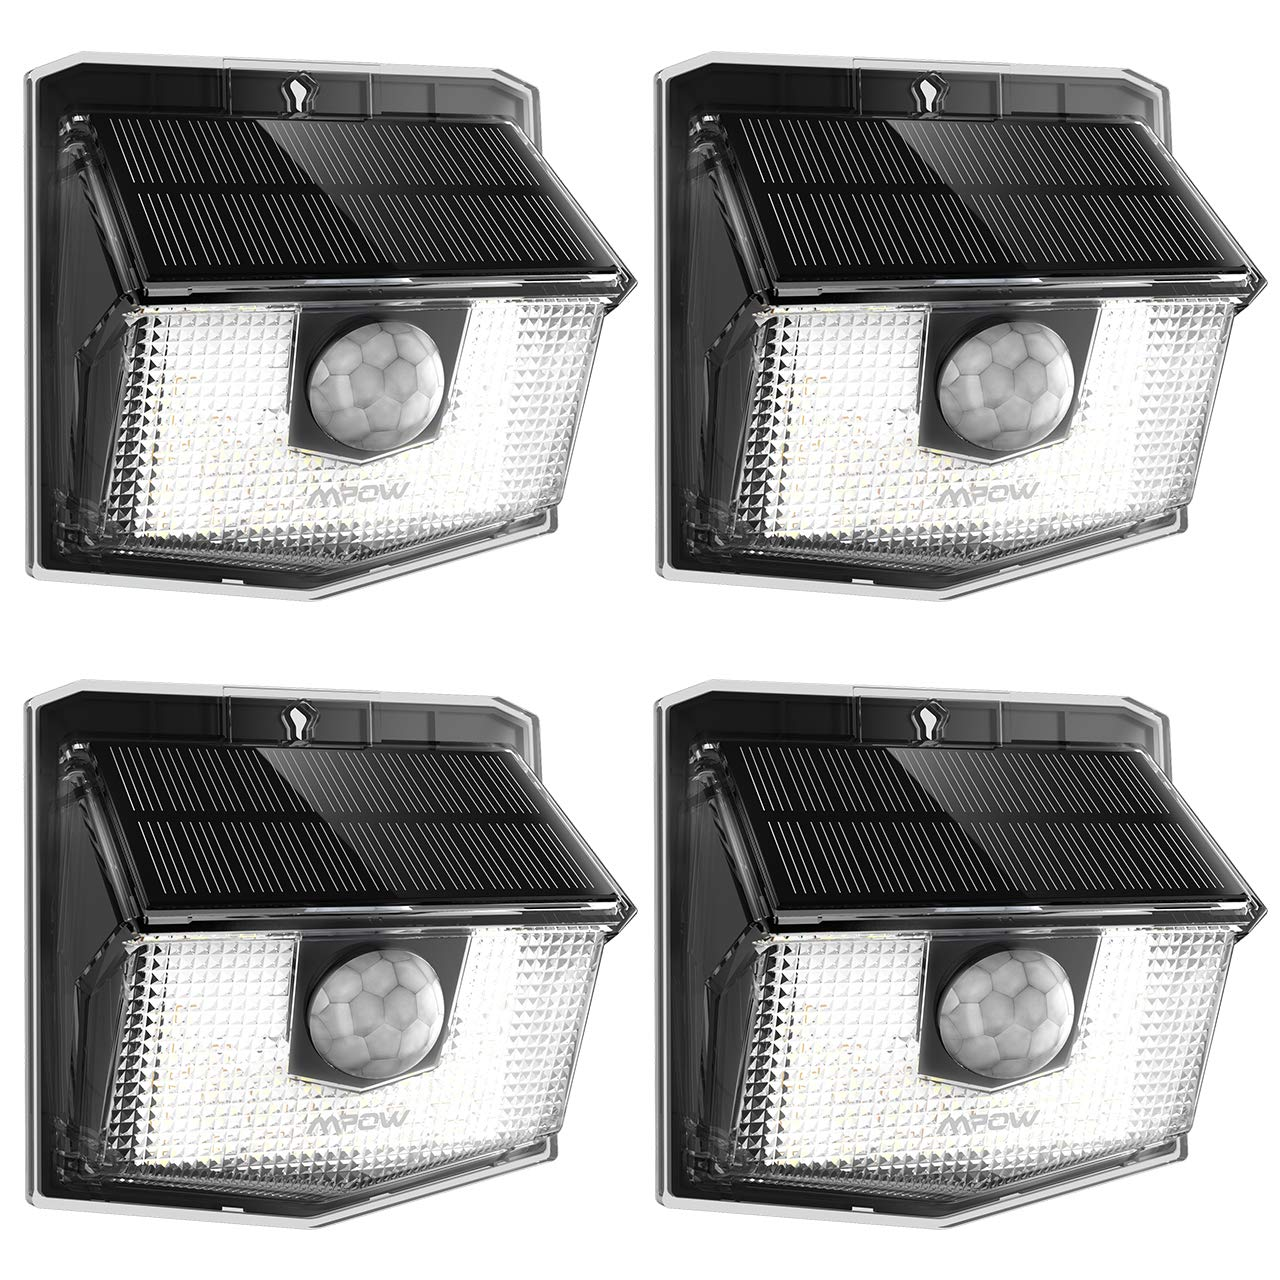 Mpow 30 LED Solar Lights